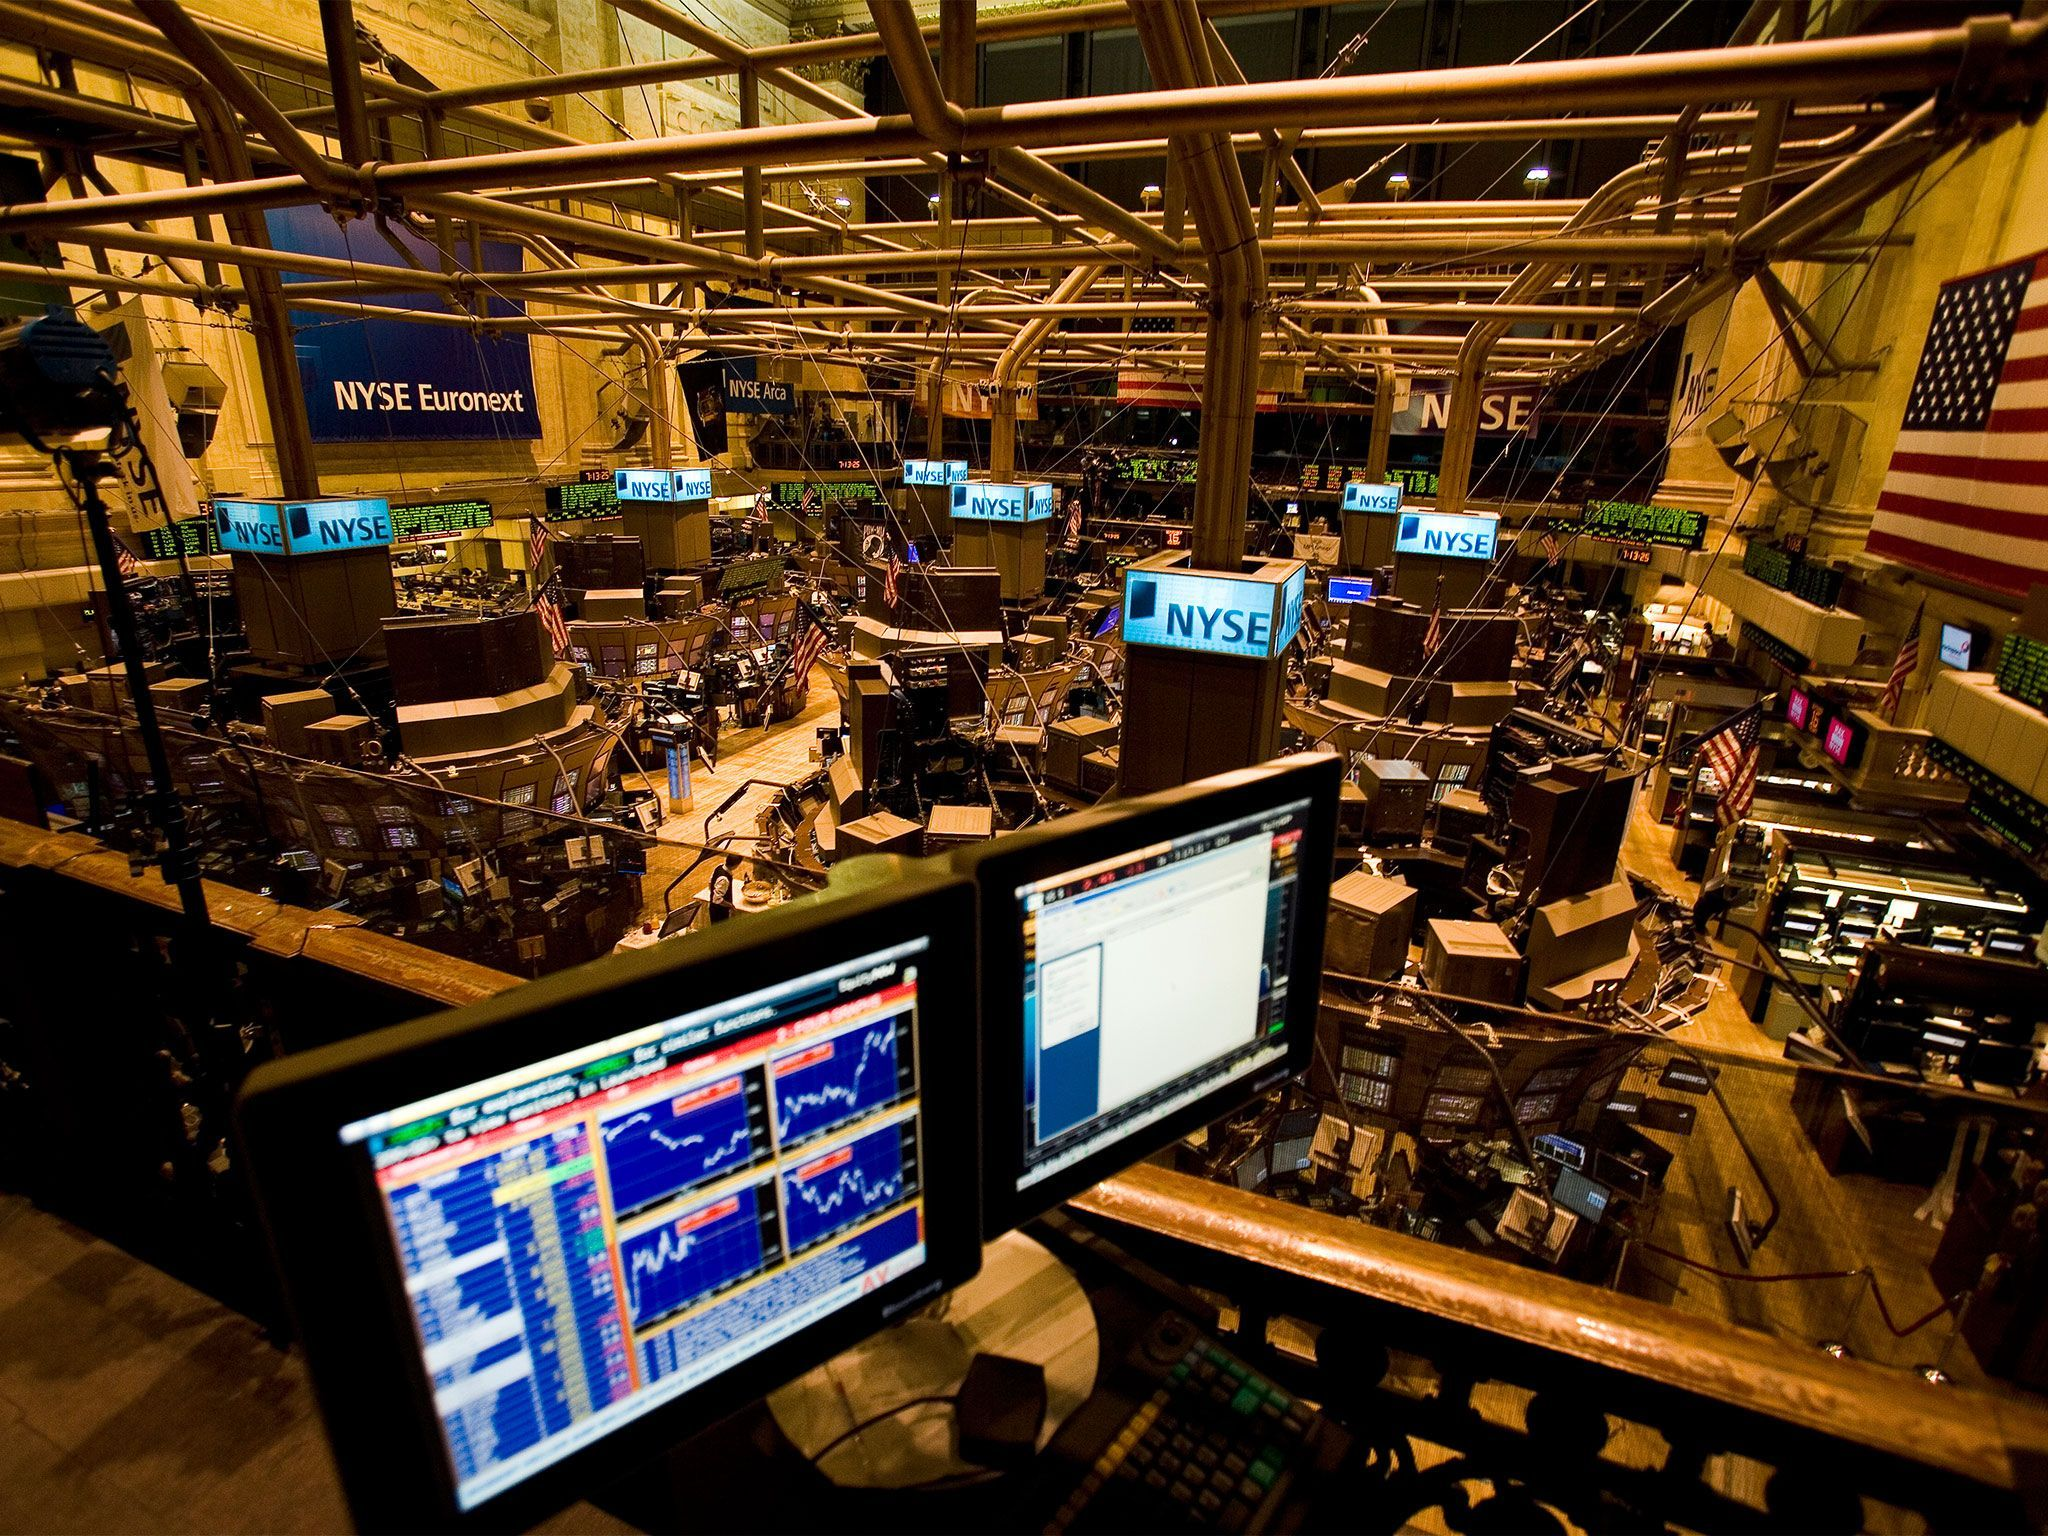 nasdaq stock market new york city wallpaper wicked wallpaper | hd